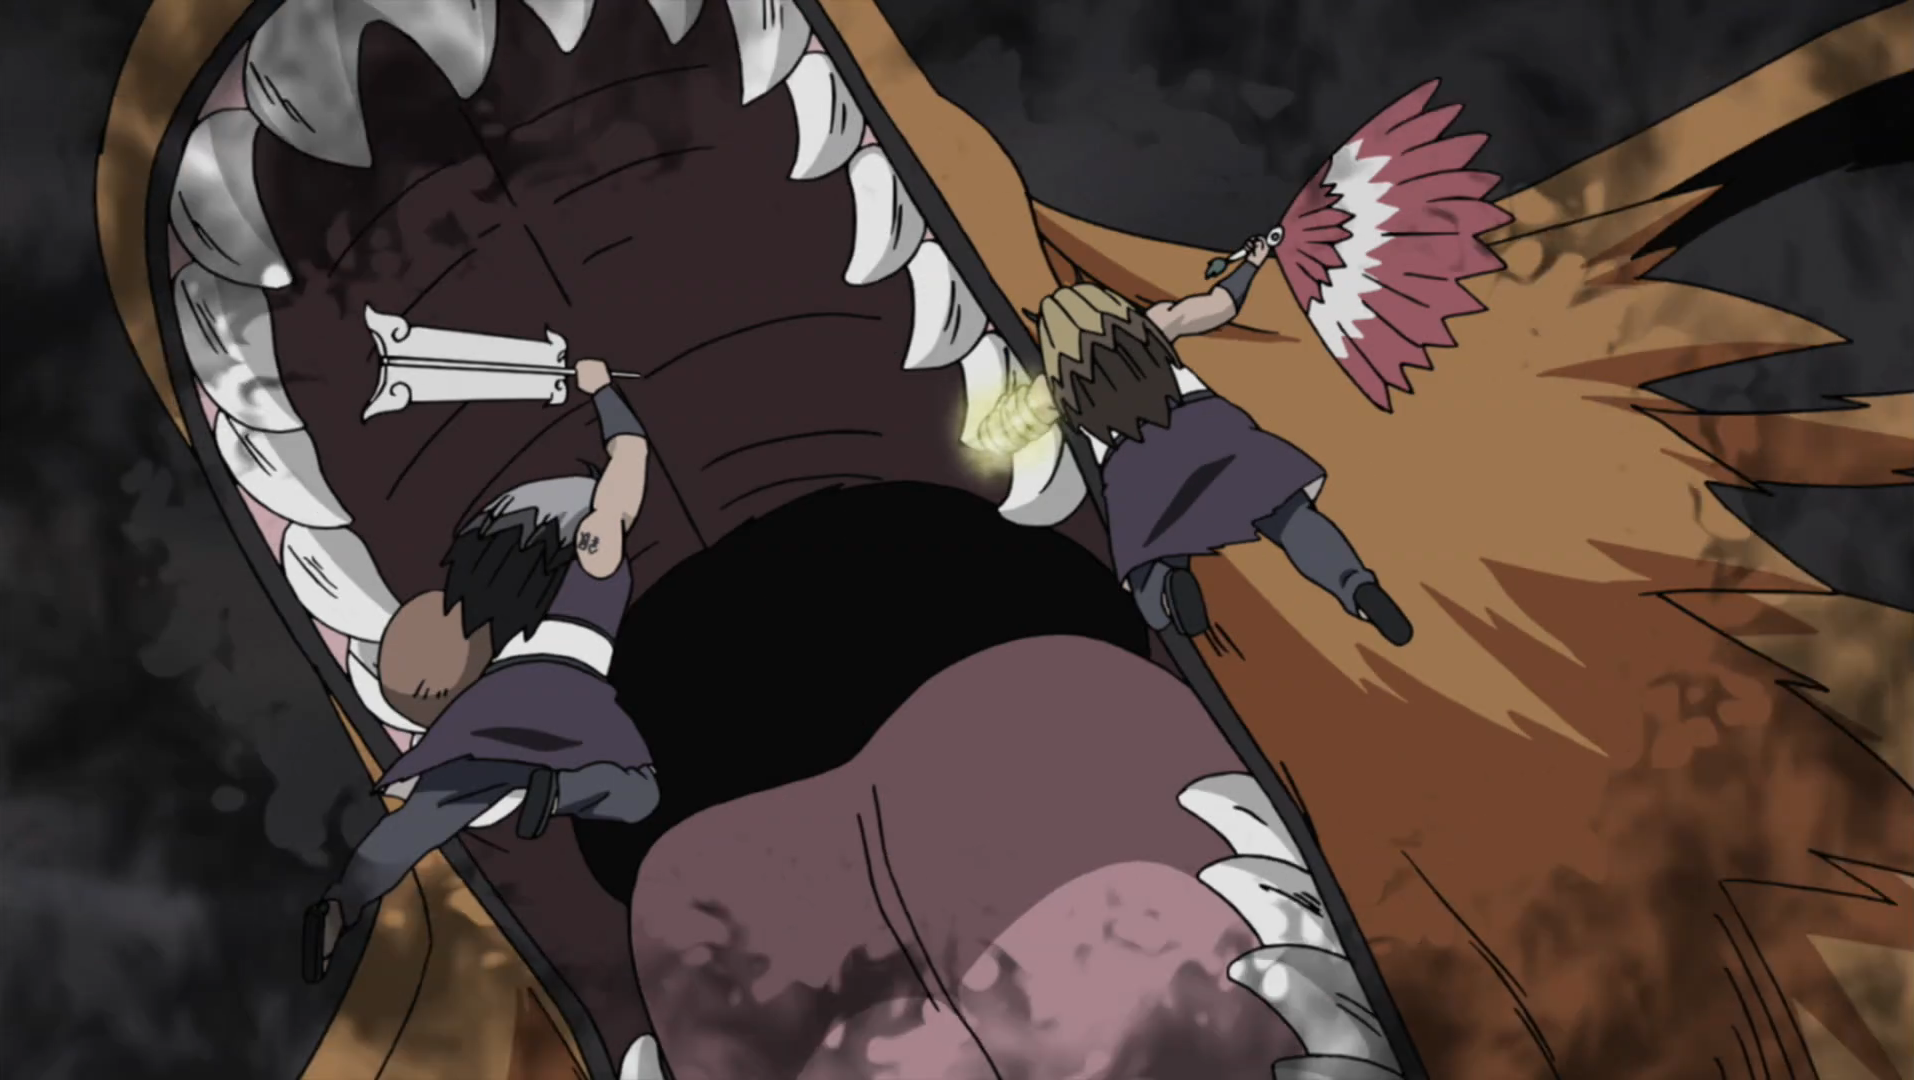 http://images.wikia.com/naruto/images/f/fe/Kurama_Swallows_Kinkaku_and_Ginkaku.png